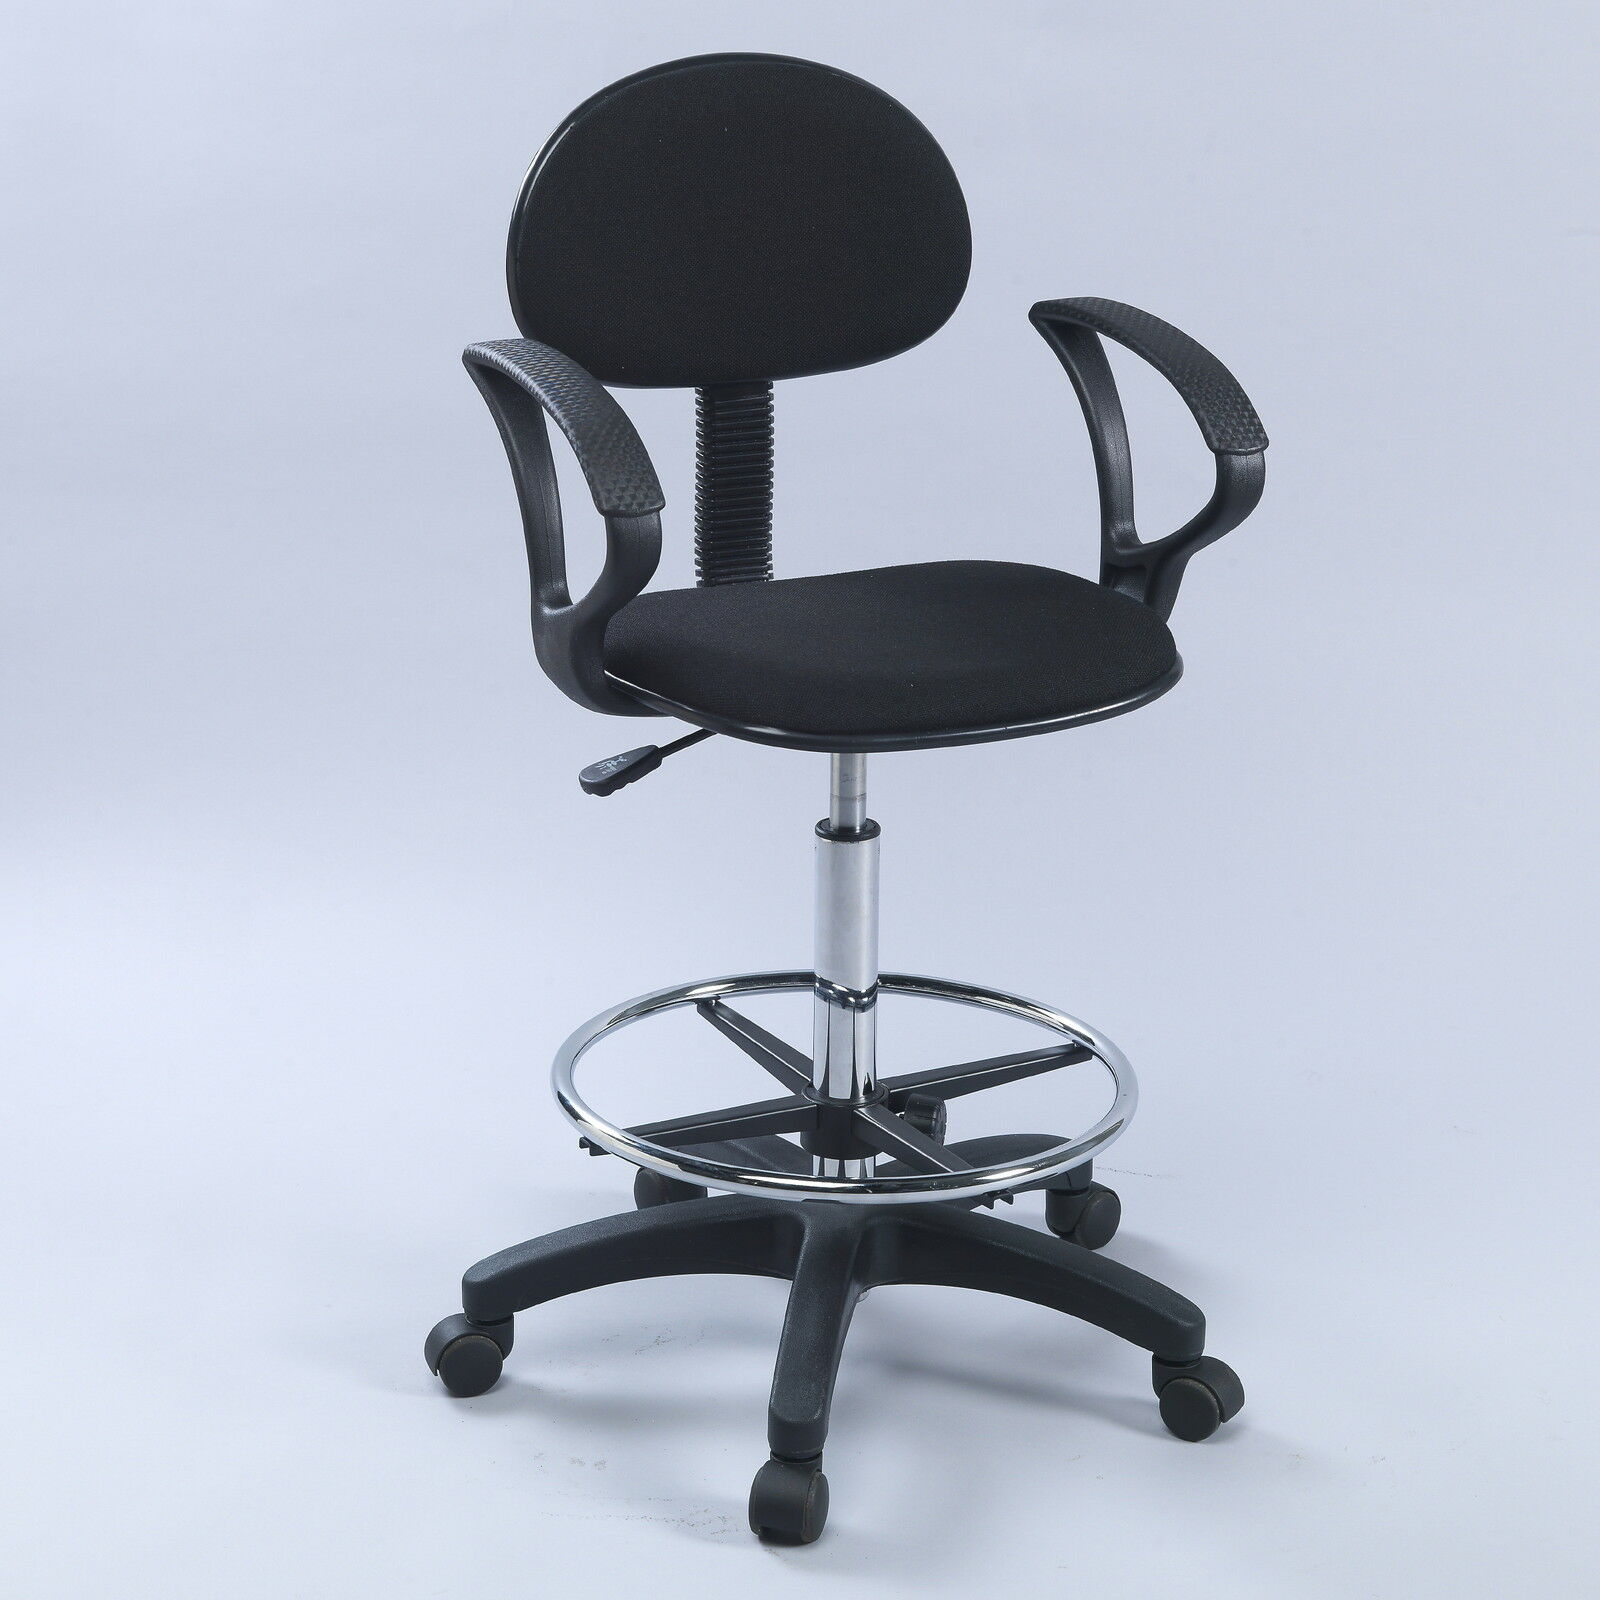 Drafting Chairs Counter Drafting Height Economy Office Chair W Arms Ebay